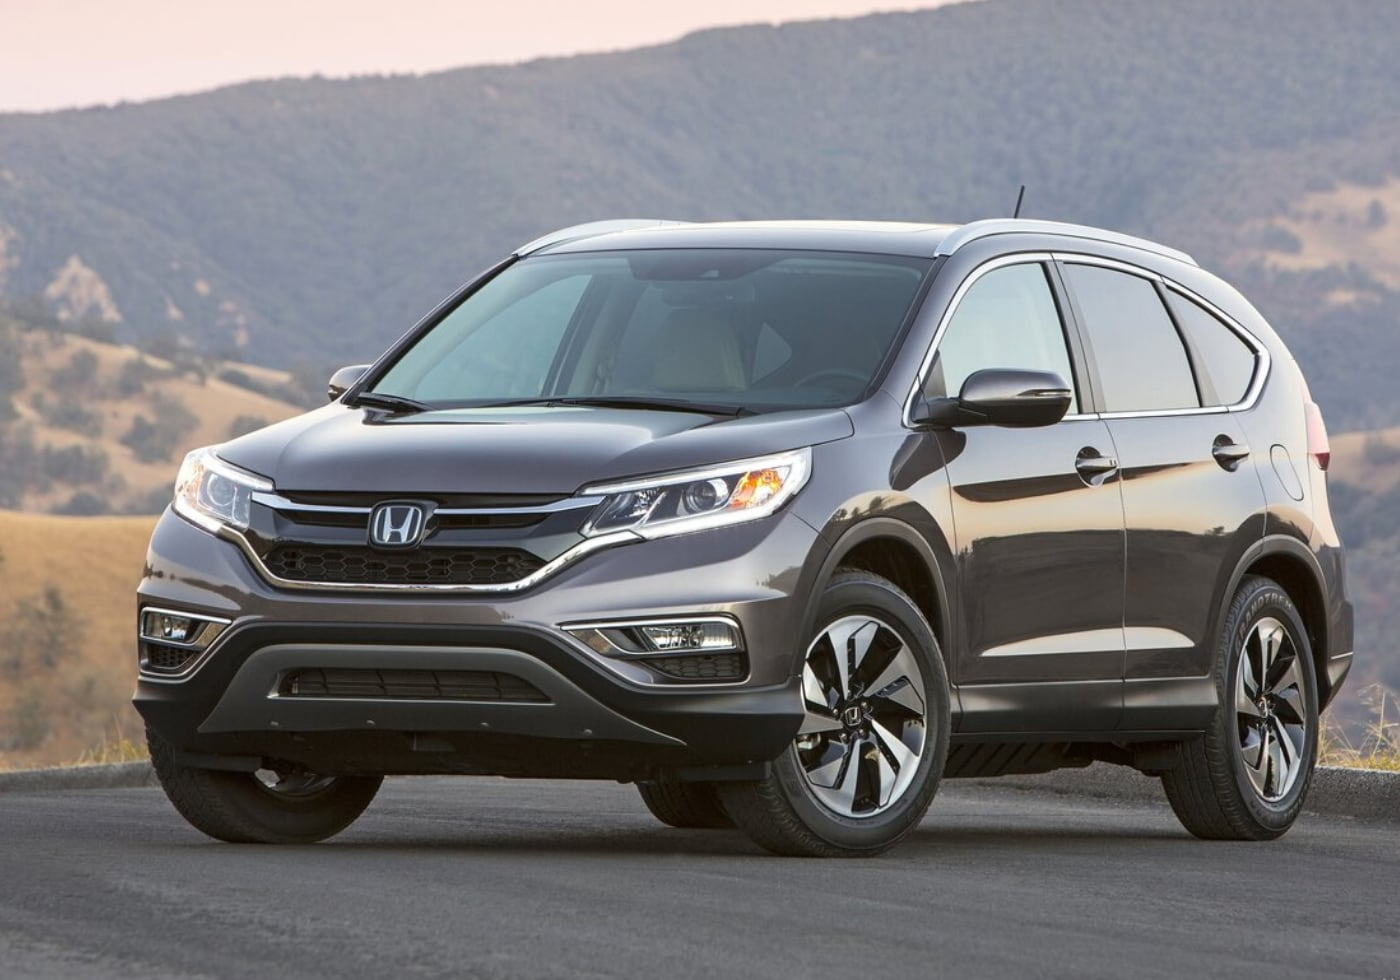 Used 2015 Honda CR-V parked on the side of a road up in the mountains